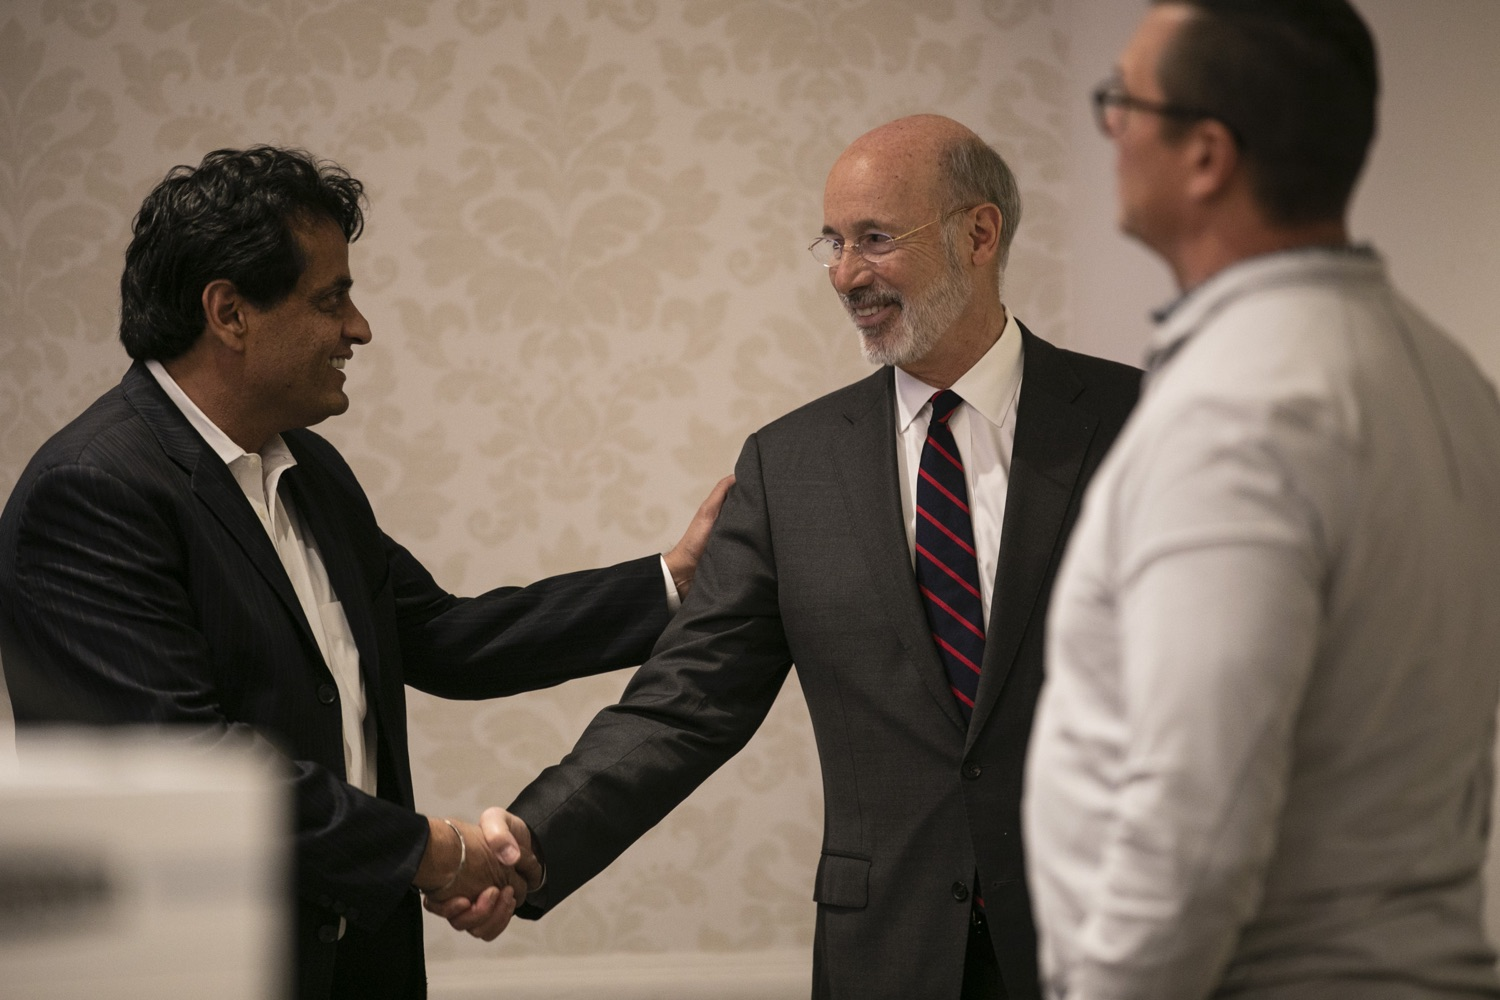 """<a href=""""https://filesource.wostreaming.net/commonwealthofpa/photo/17575_gov_philly_opioids_amb_002.jpg"""" target=""""_blank"""">⇣Download Photo<br></a>Governor Tom Wolf provides an update on the states progress in battling the opioid epidemic during the Pennsylvania Orthopaedic Societys Fall Meeting and Symposium. Department of Health Secretary Dr. Rachel Levine joined the governor on the opioid panel discussion. November 8, 2019. Philadelphia, PA."""